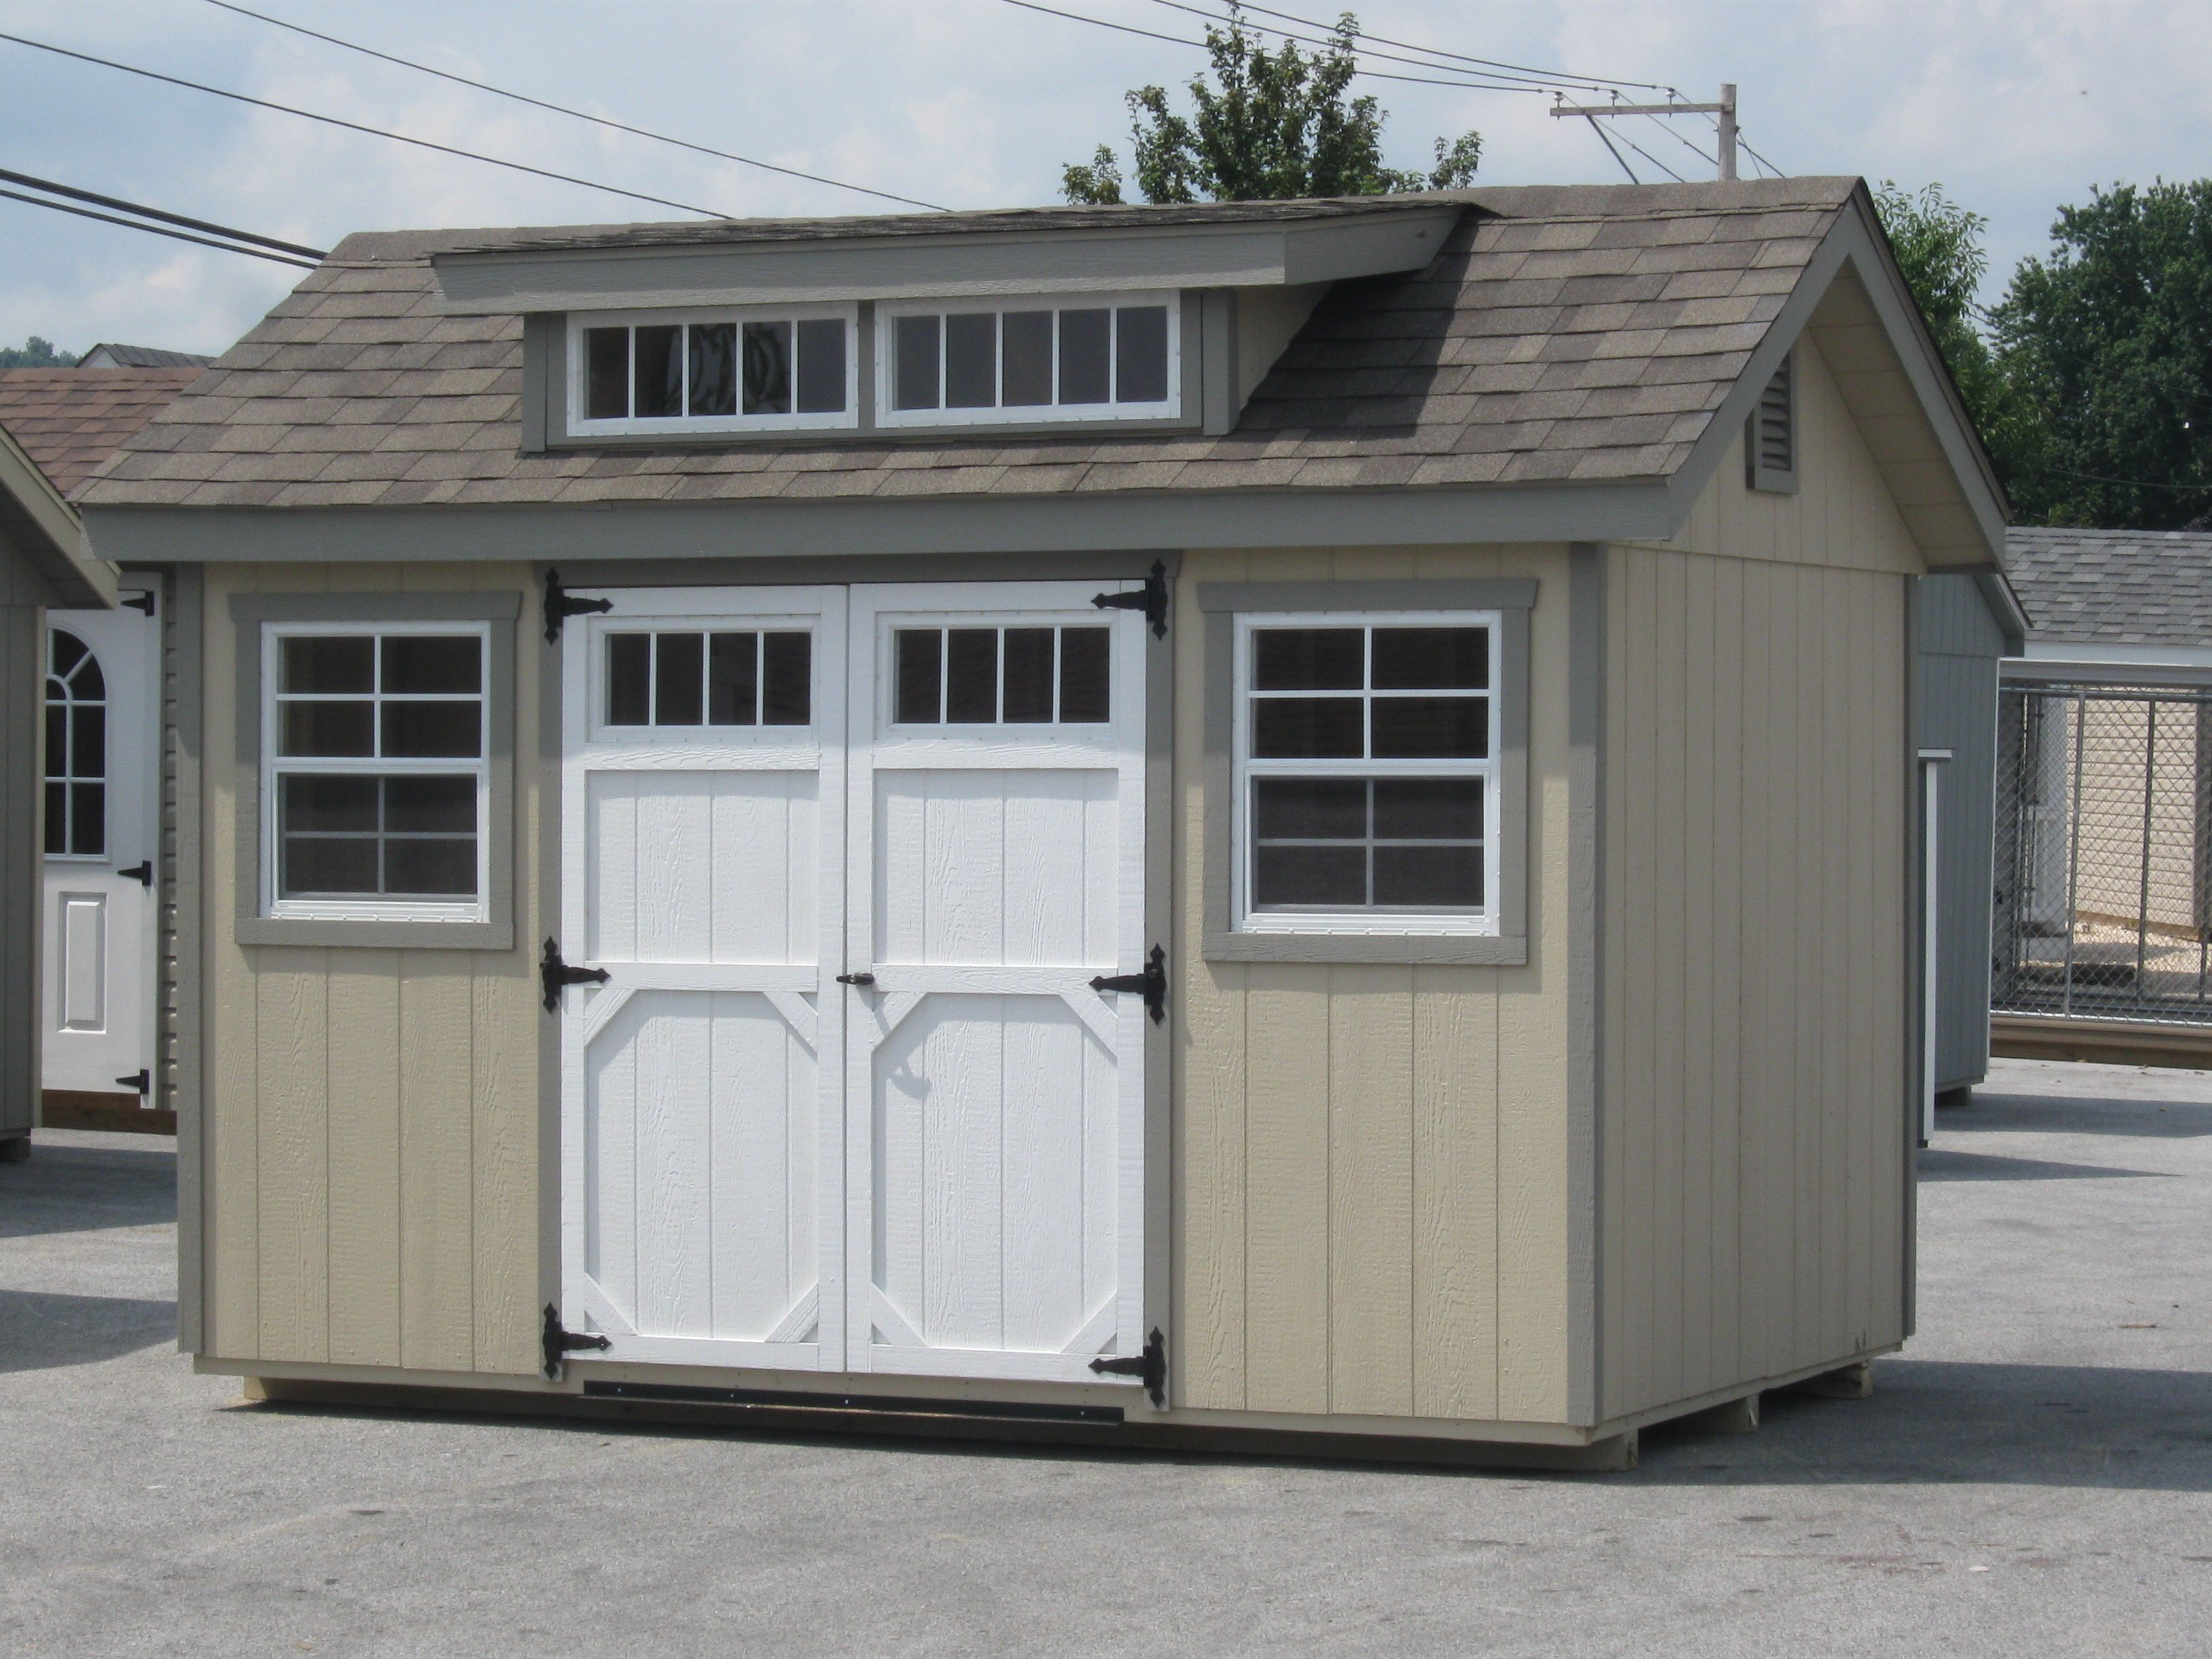 raised amish virginia lp of roof xfoot garages sheds interesting storage full garage size with for